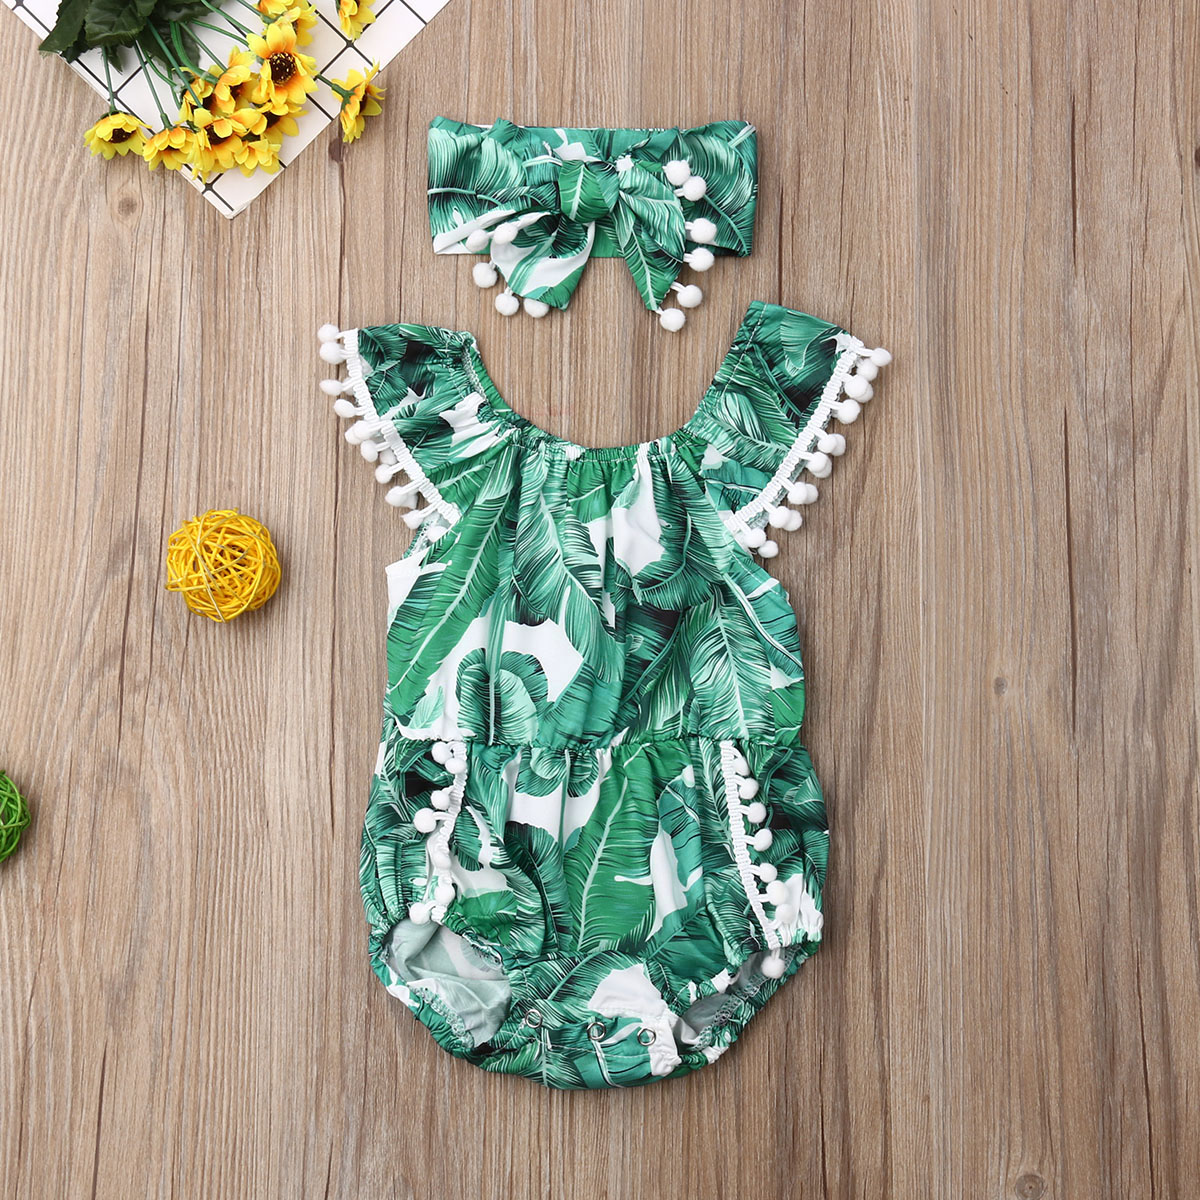 Emmababy Summer Newborn Baby Girl Clothes Sleeveless Palm Leaf Print Tassel Romper Jumpsuit Headband 2Pcs Outfits Clothes Summer